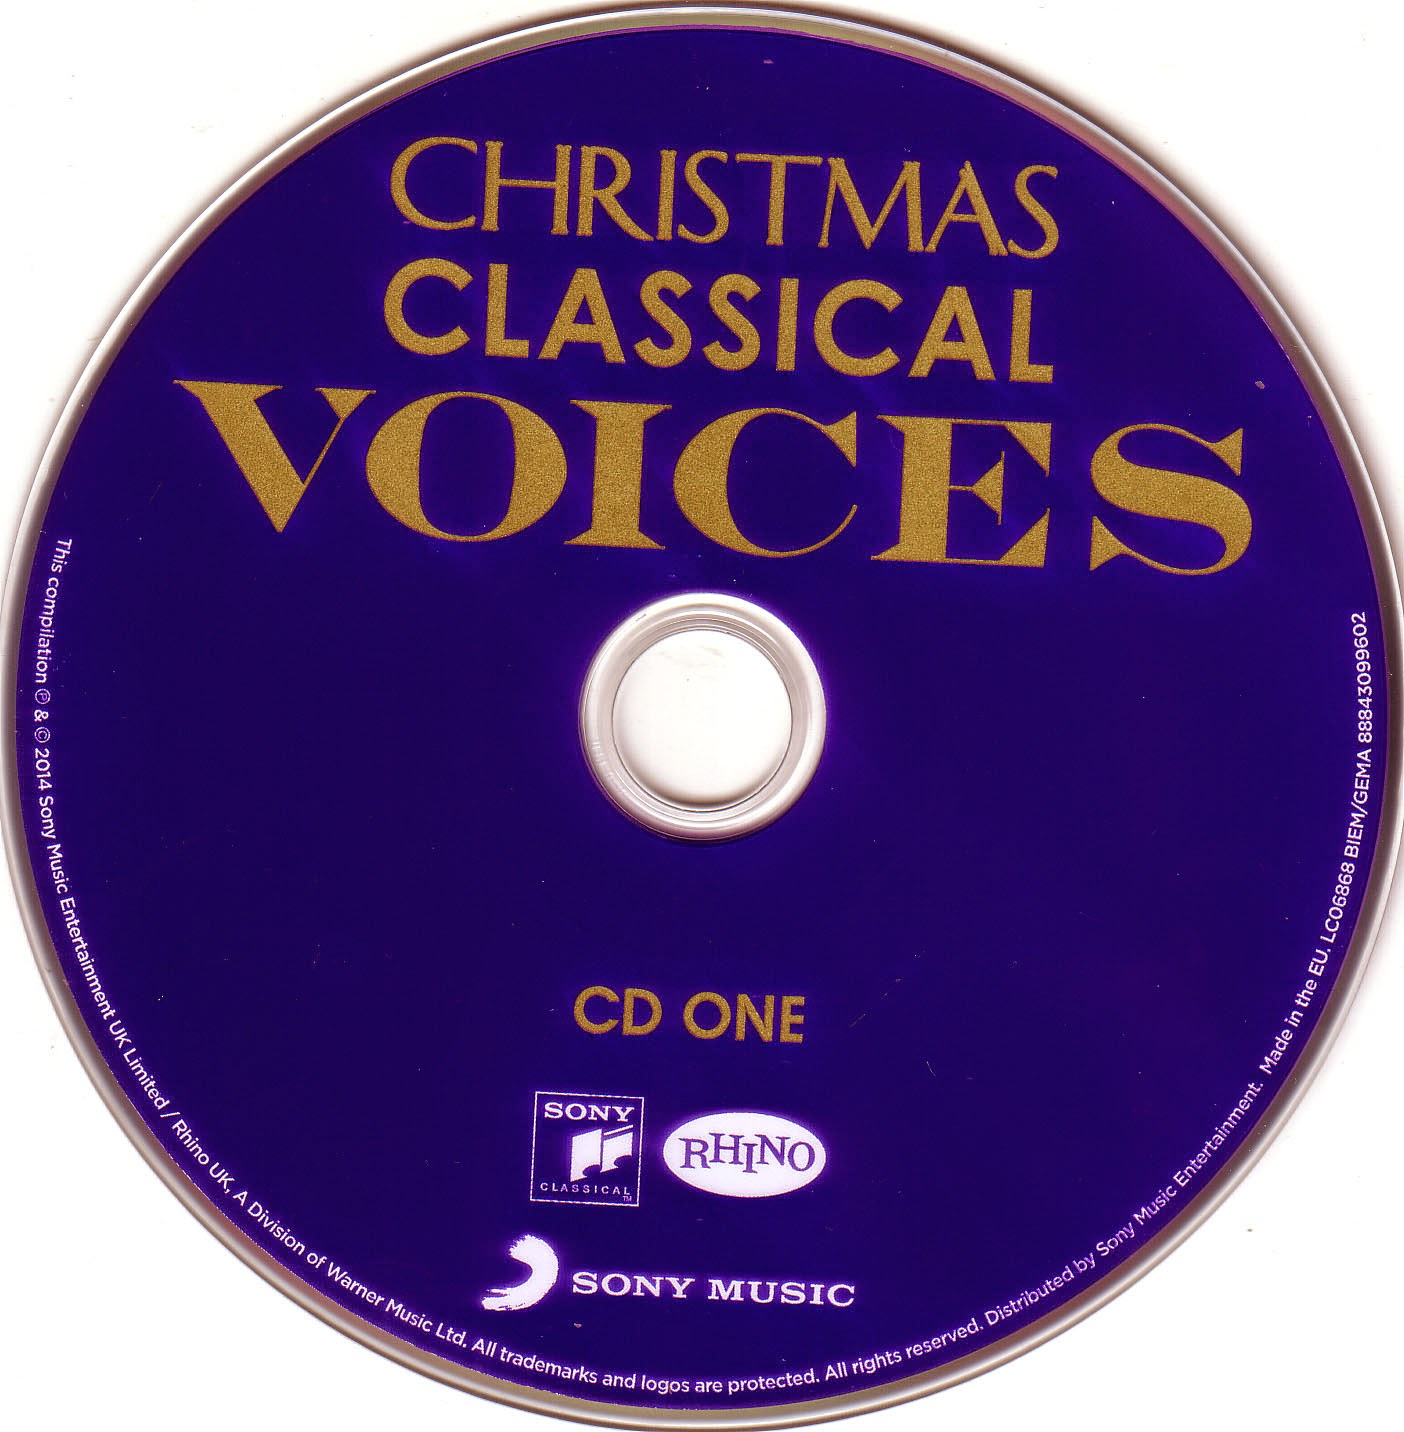 Christmas Classical Voices CD1